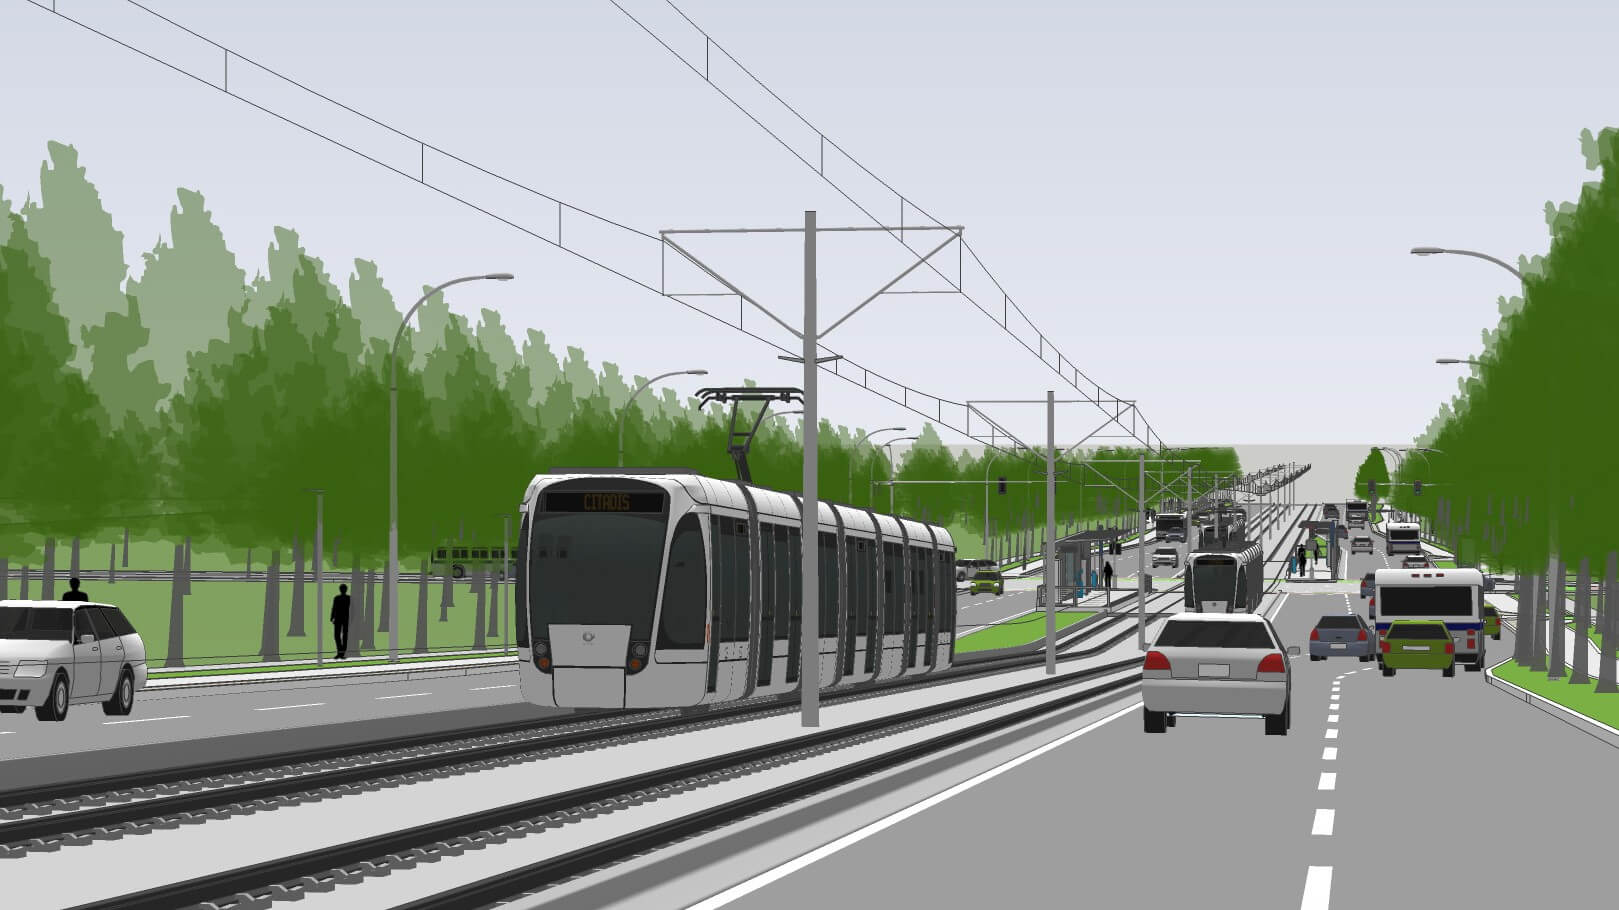 MLA Garry Begg: Surrey City Council fails in 'selling' its LRT vision